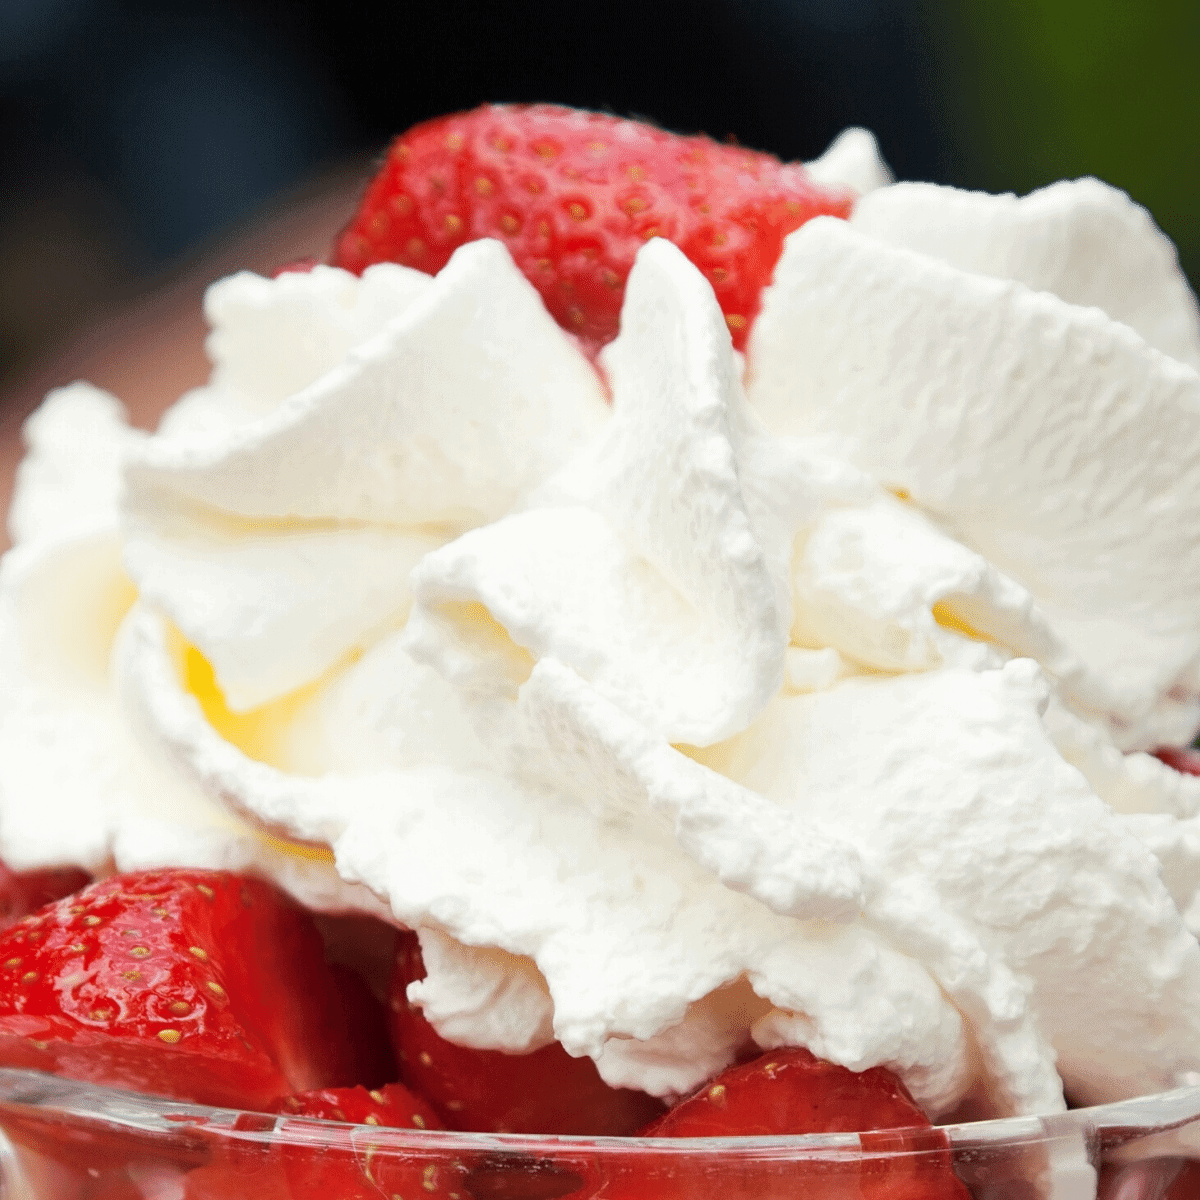 Homemade Keto Whipped Cream recipe low carb gluten free